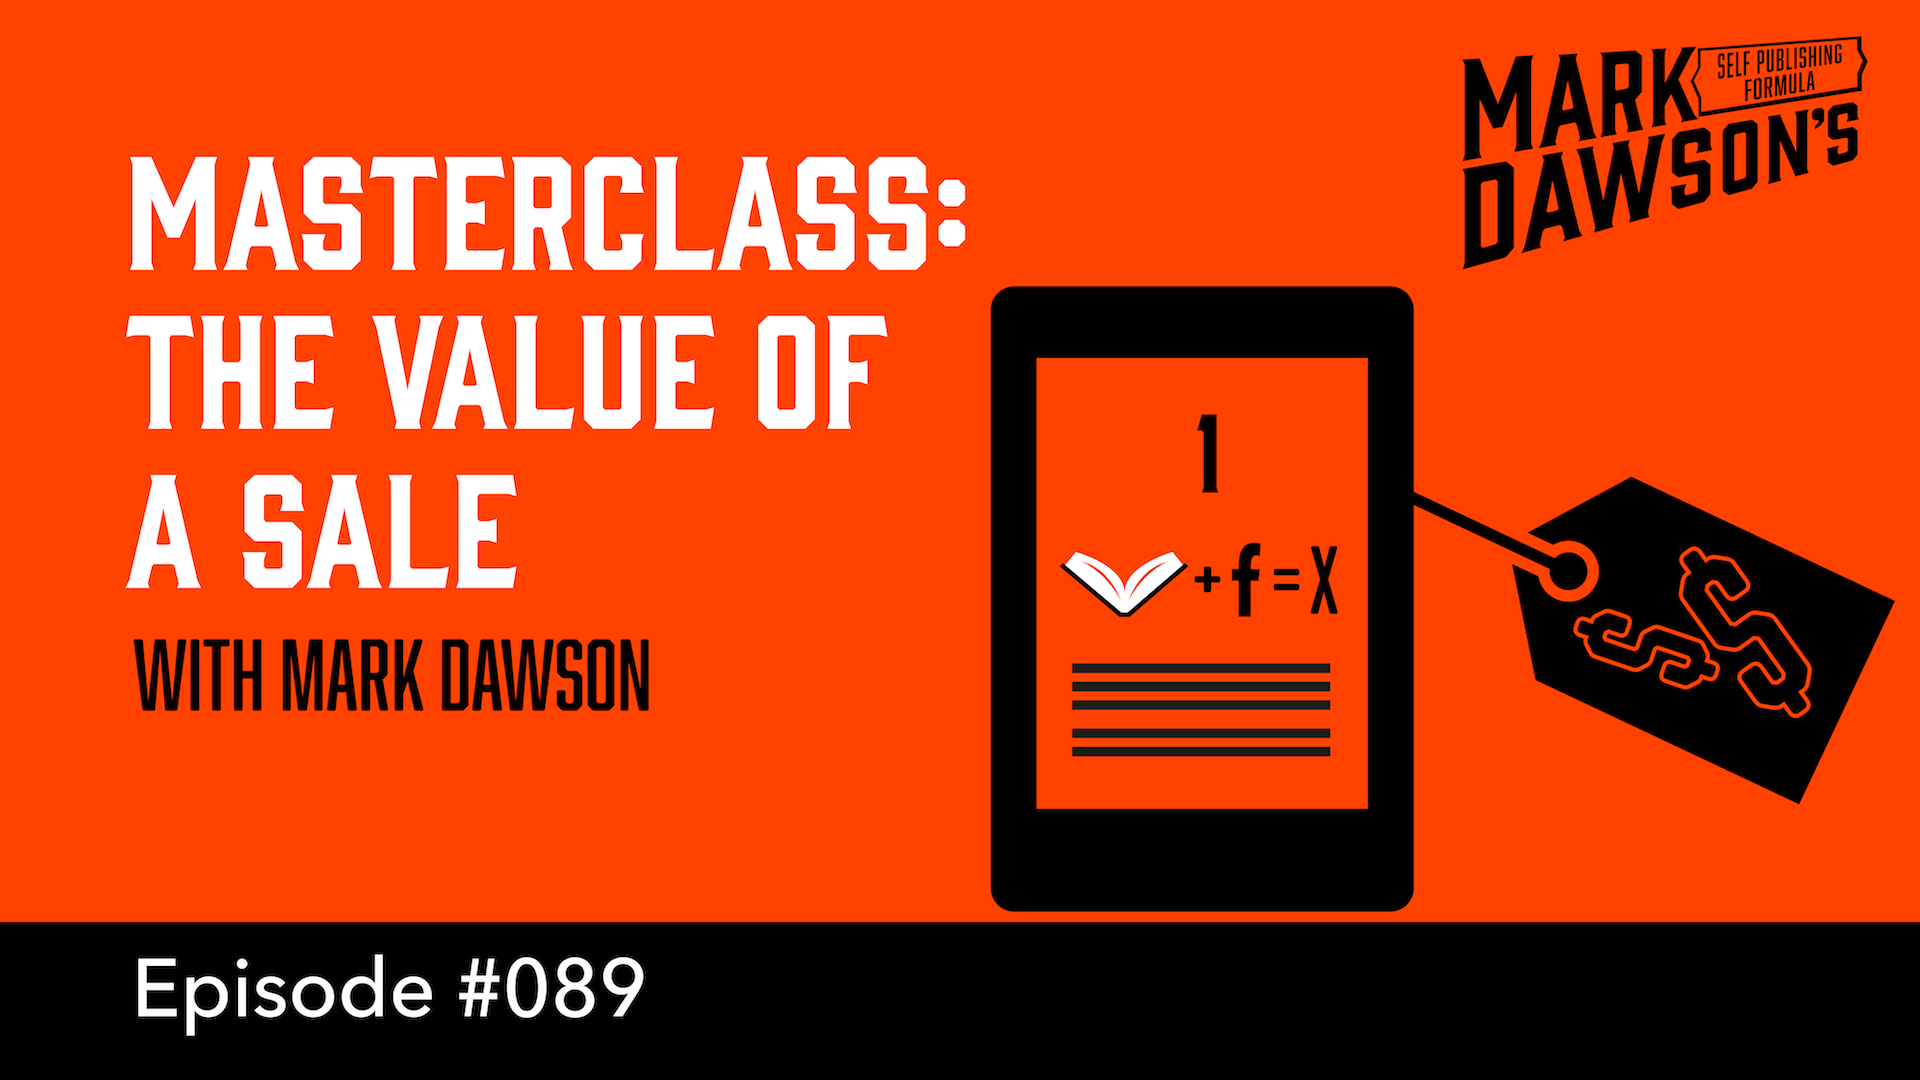 Masterclass: The Value of a Sale - with Mark Dawson